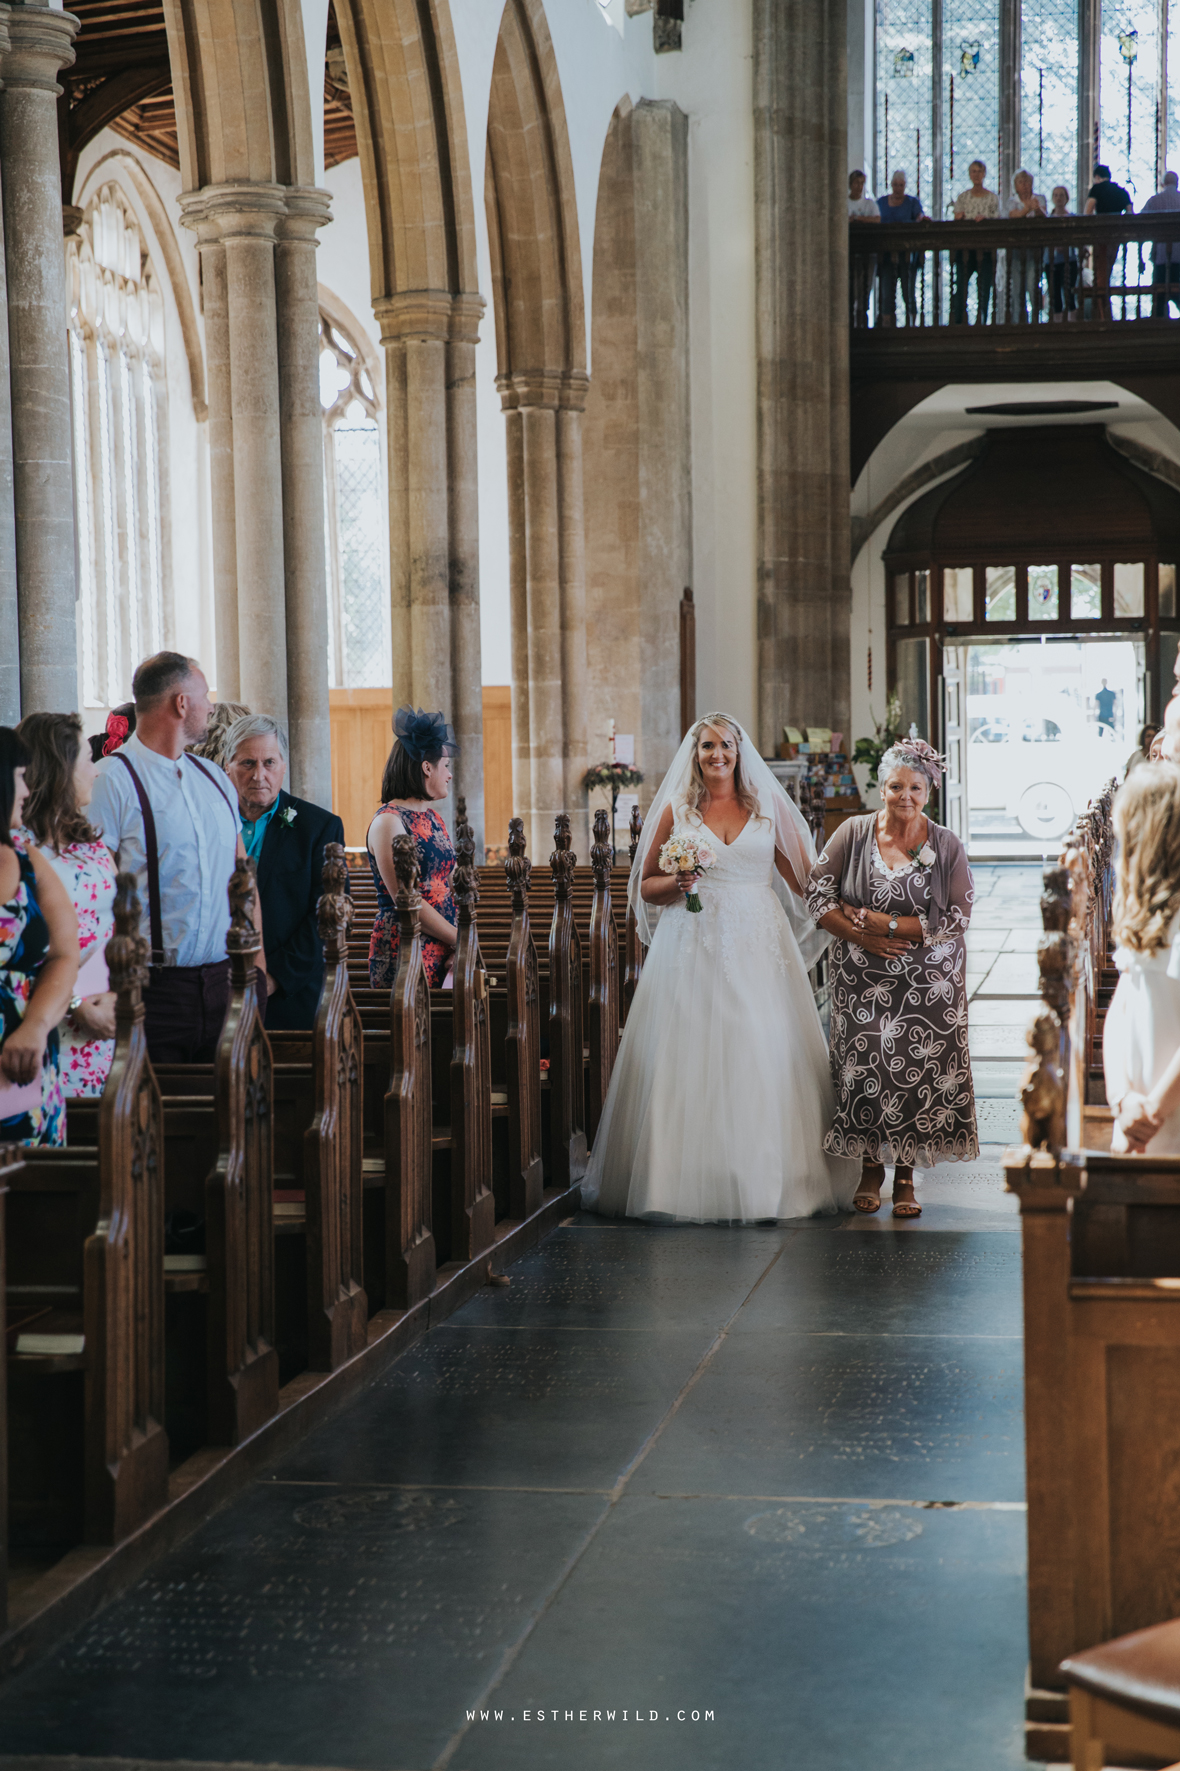 Swaffham_Wedding_Castle_Acre_Norfolk_Esther_Wild_Photographer_Wedding_Photography_3R8A0614.jpg